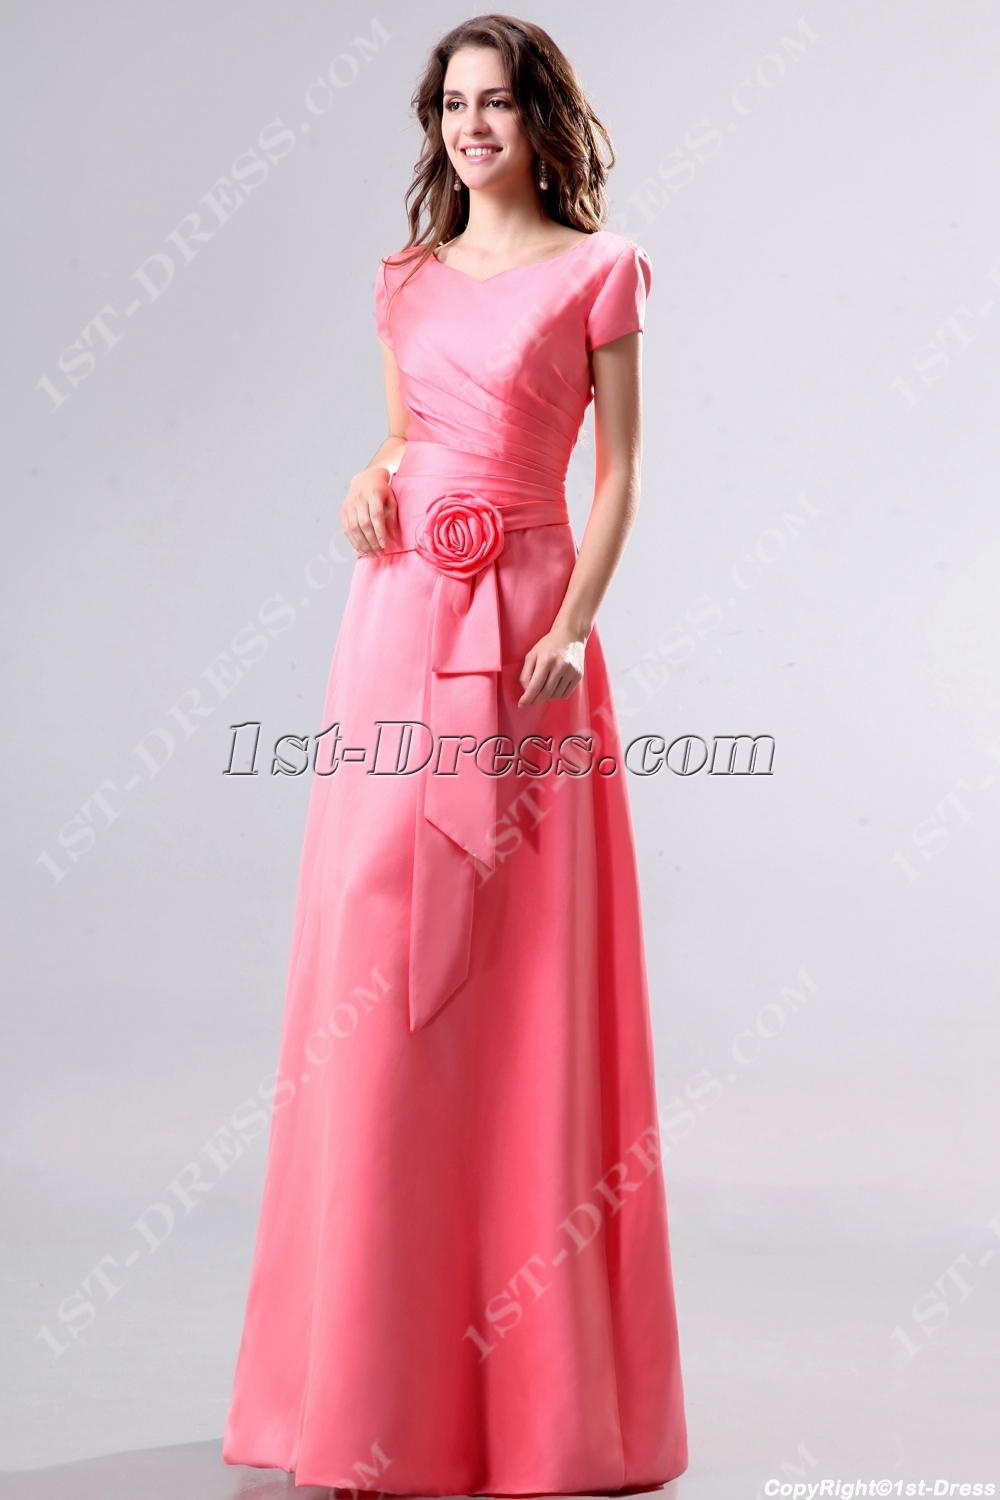 Modest coral v neckline short sleeves bridesmaid dress1st dress modest coral v neckline short sleeves bridesmaid dress loading zoom ombrellifo Choice Image